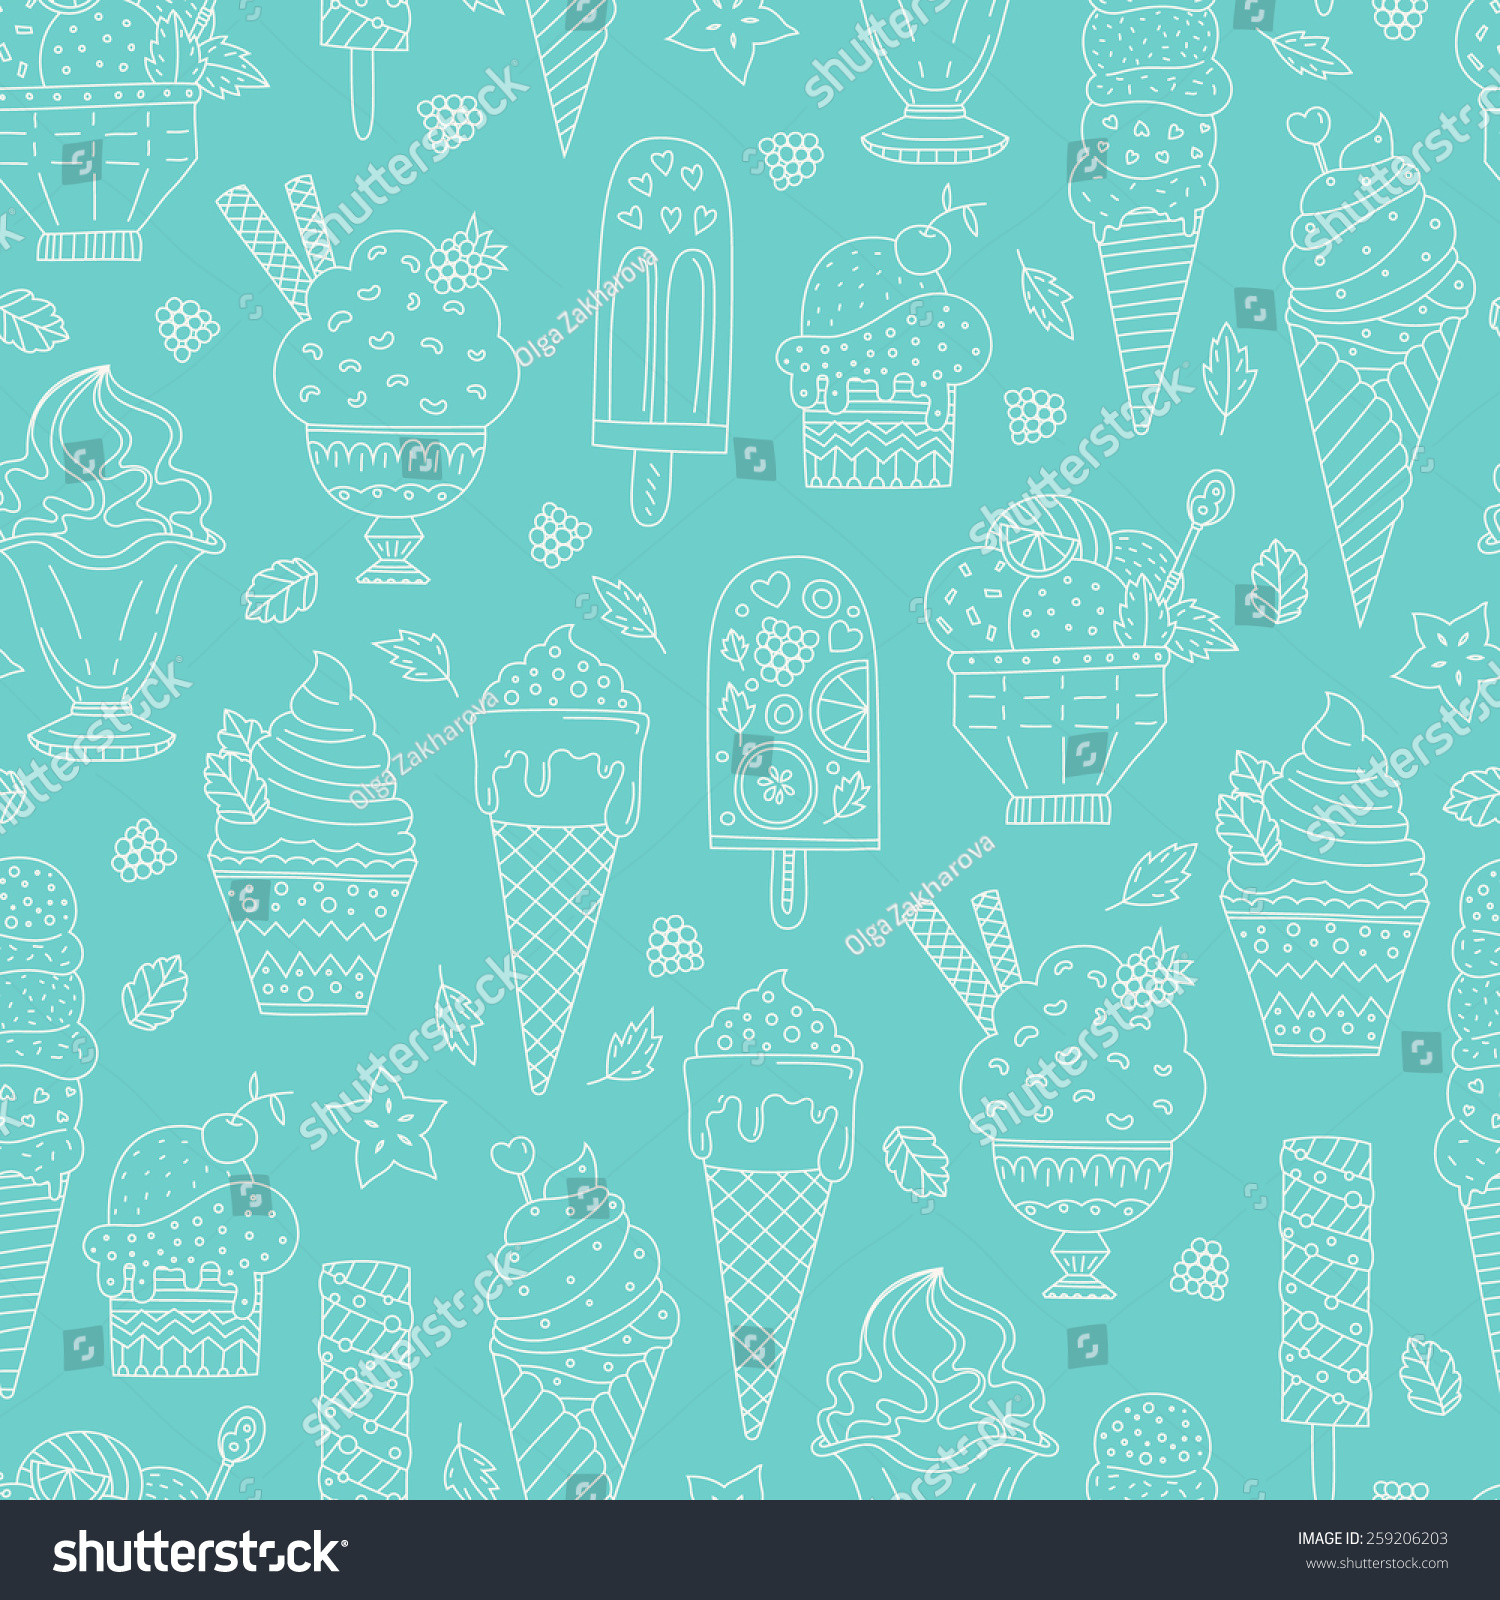 Seamless Pattern With Hand Drawn Watercolor Ice Cream: Cute Hand Drawn Seamless Pattern Different Stock Vector